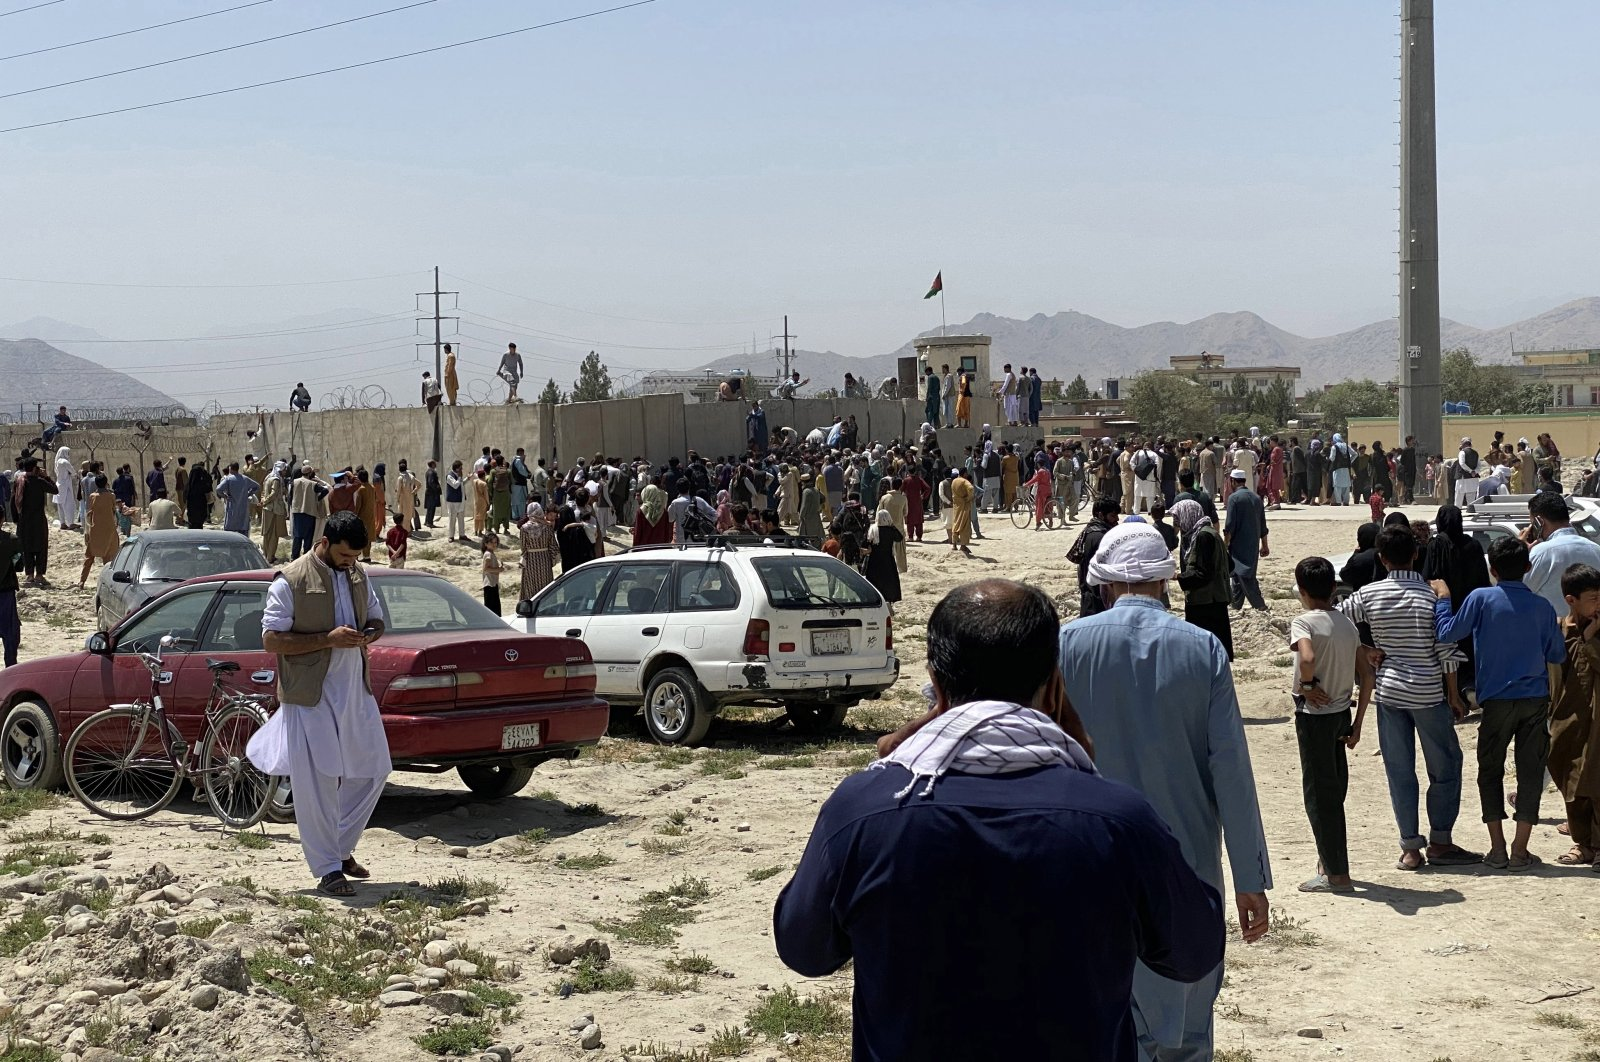 People struggle to cross the boundary wall of Kabul Hamid Karzai International Airport in a bid to flee the country after the Taliban took control of Kabul, Afghanistan, Aug. 16, 2021. (EPA Photo)